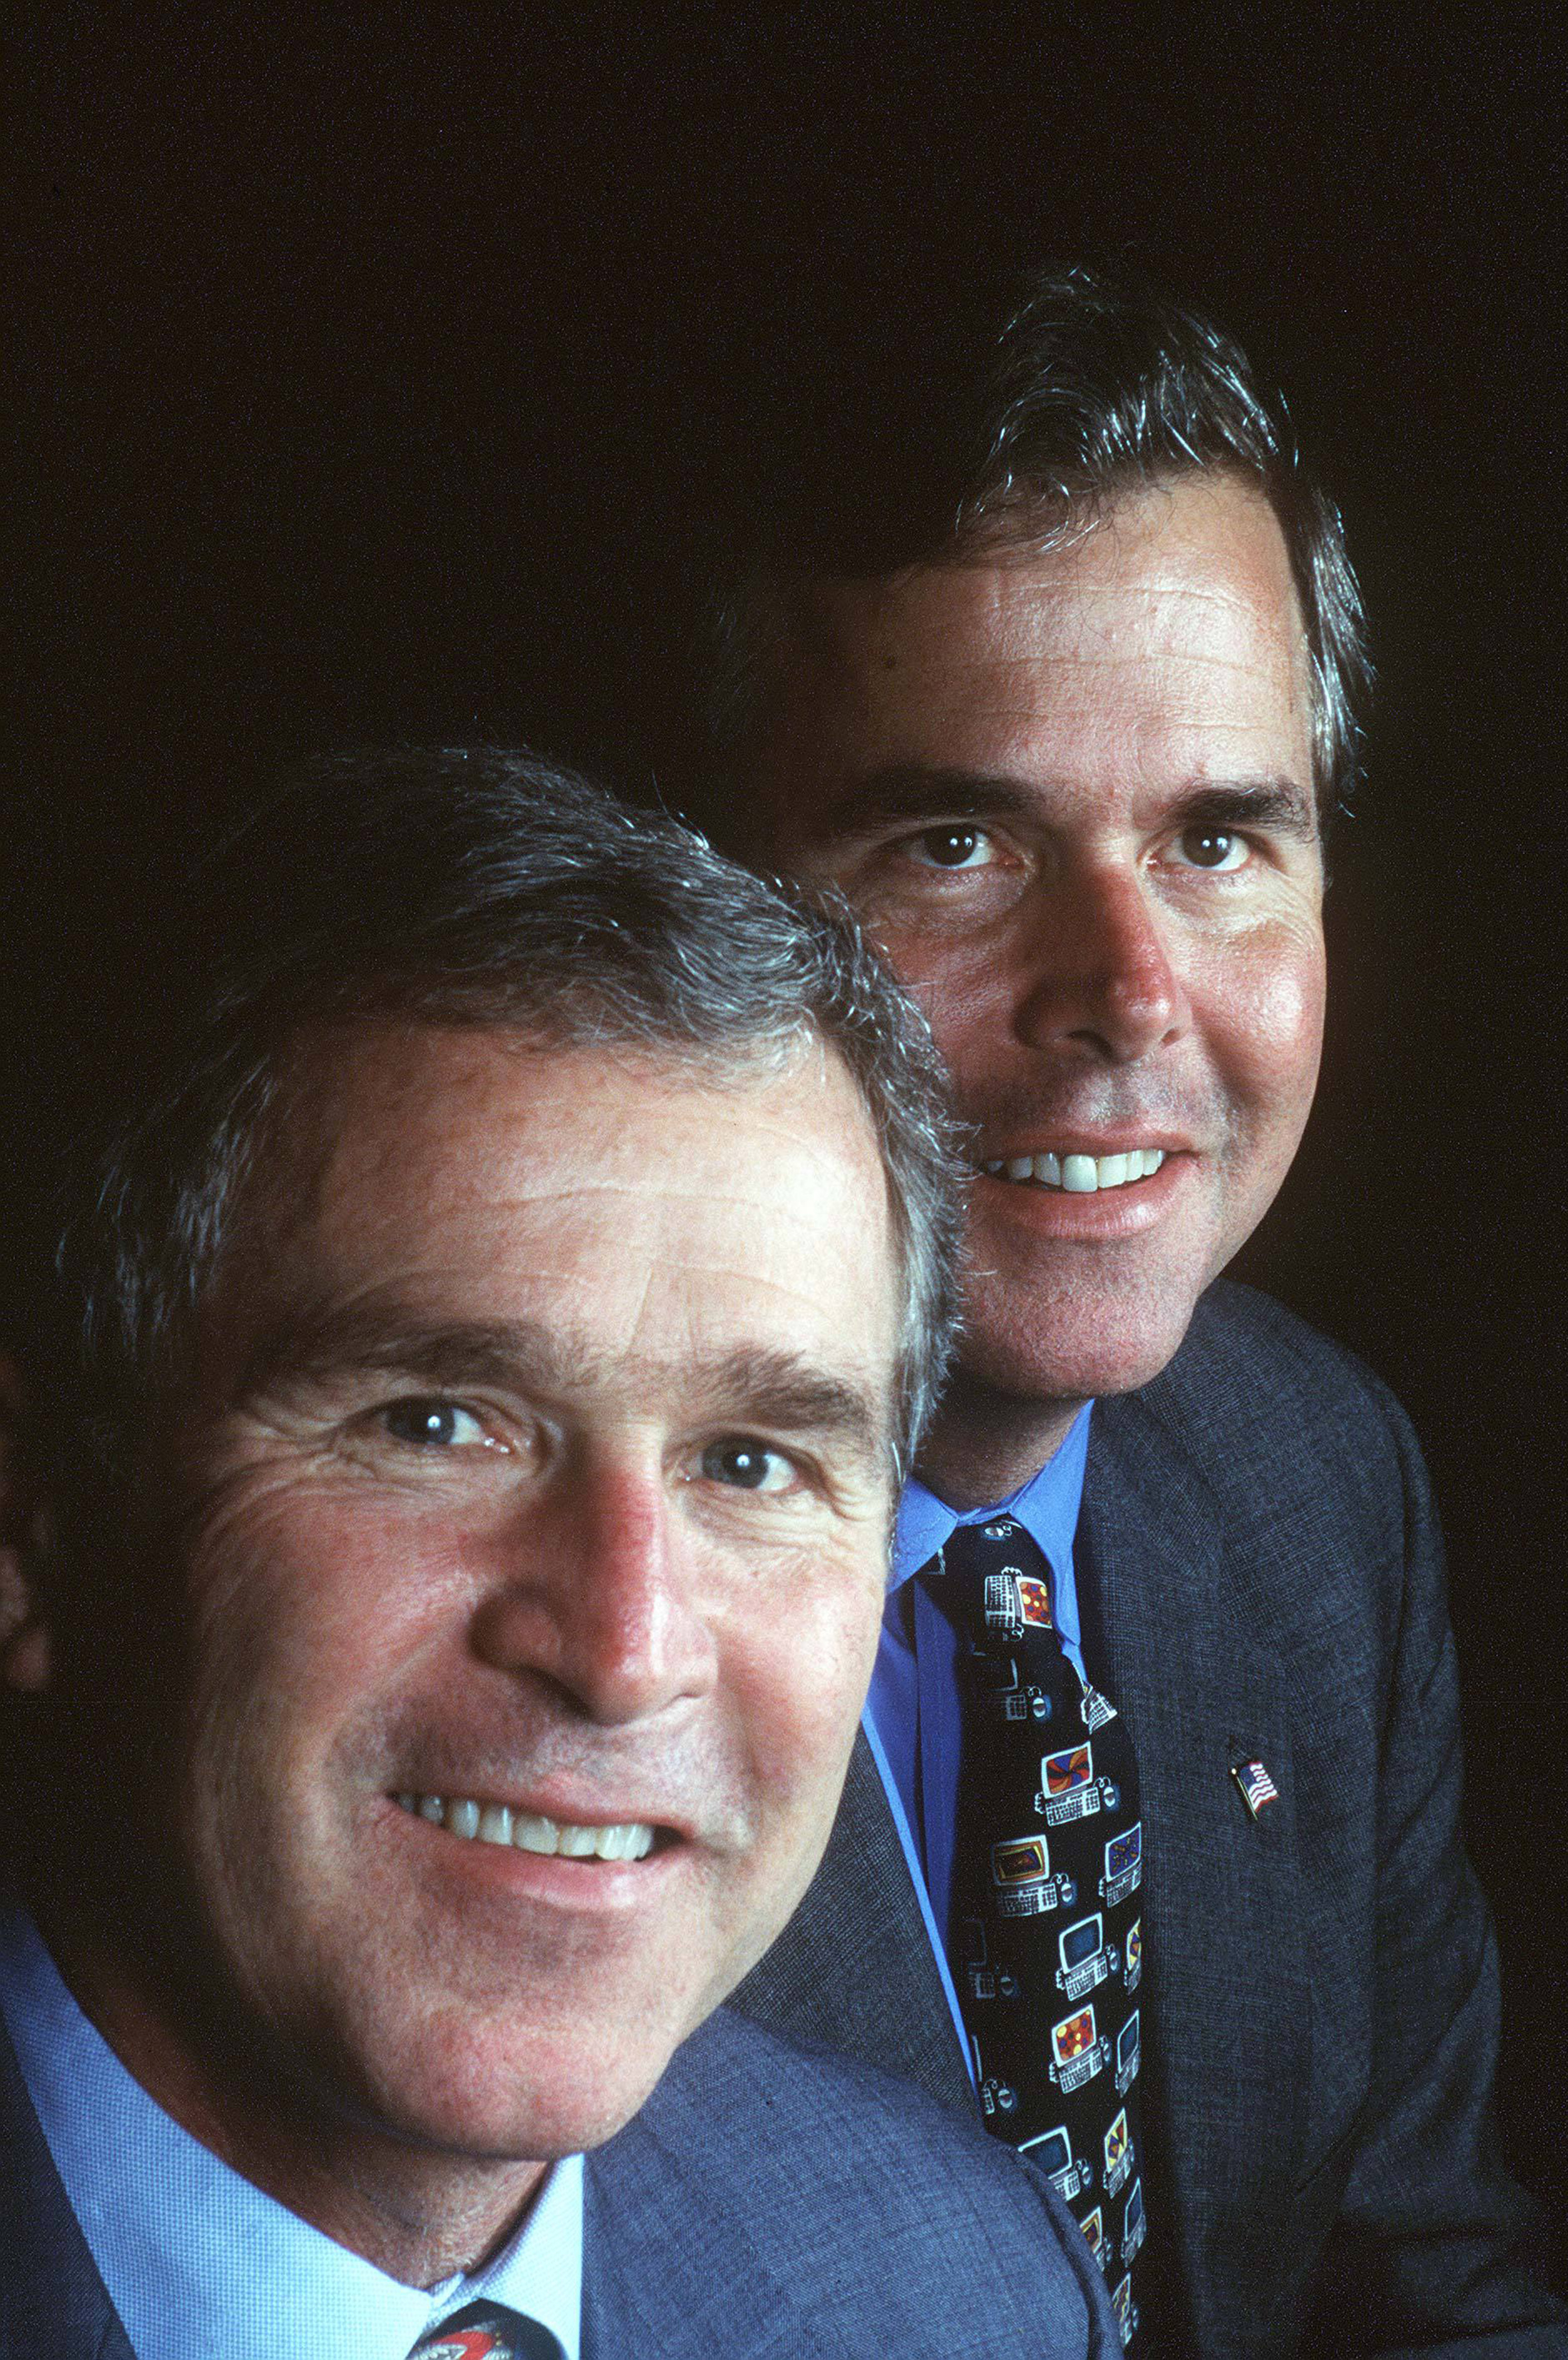 George W. Bush and Jeb Bush at the Republican Governors' Convention in New Orleans, 1998.